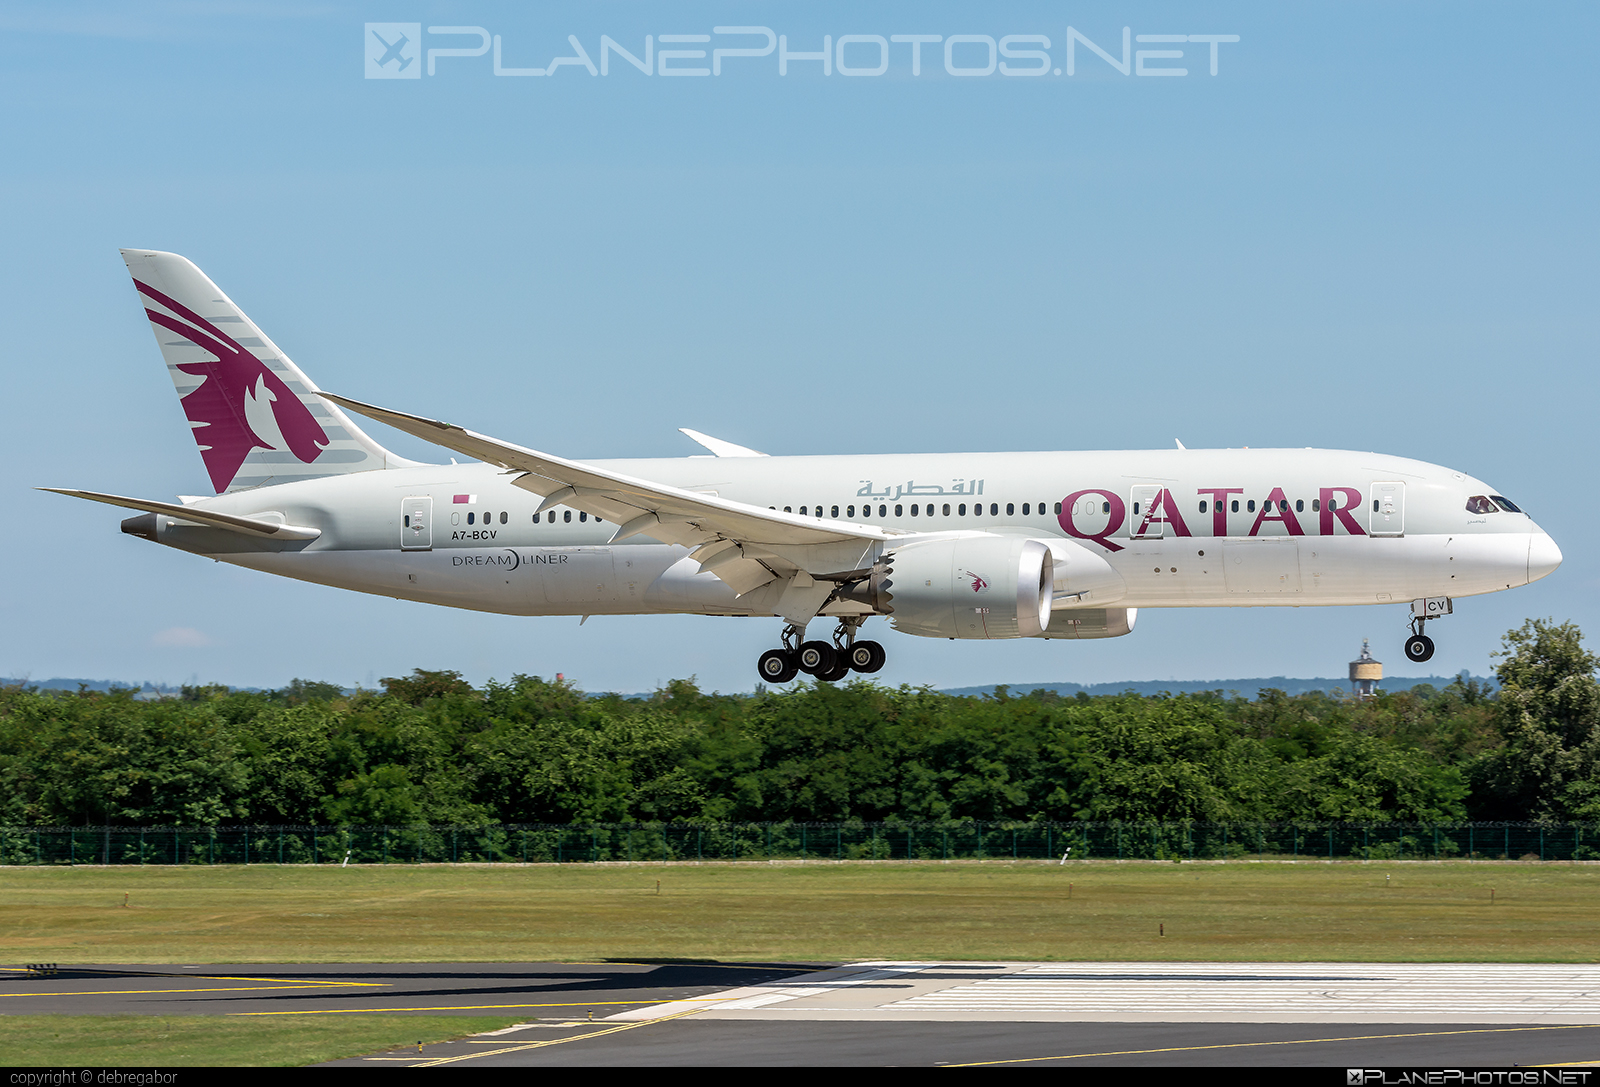 Boeing 787-8 Dreamliner - A7-BCV operated by Qatar Airways #b787 #boeing #boeing787 #dreamliner #qatarairways